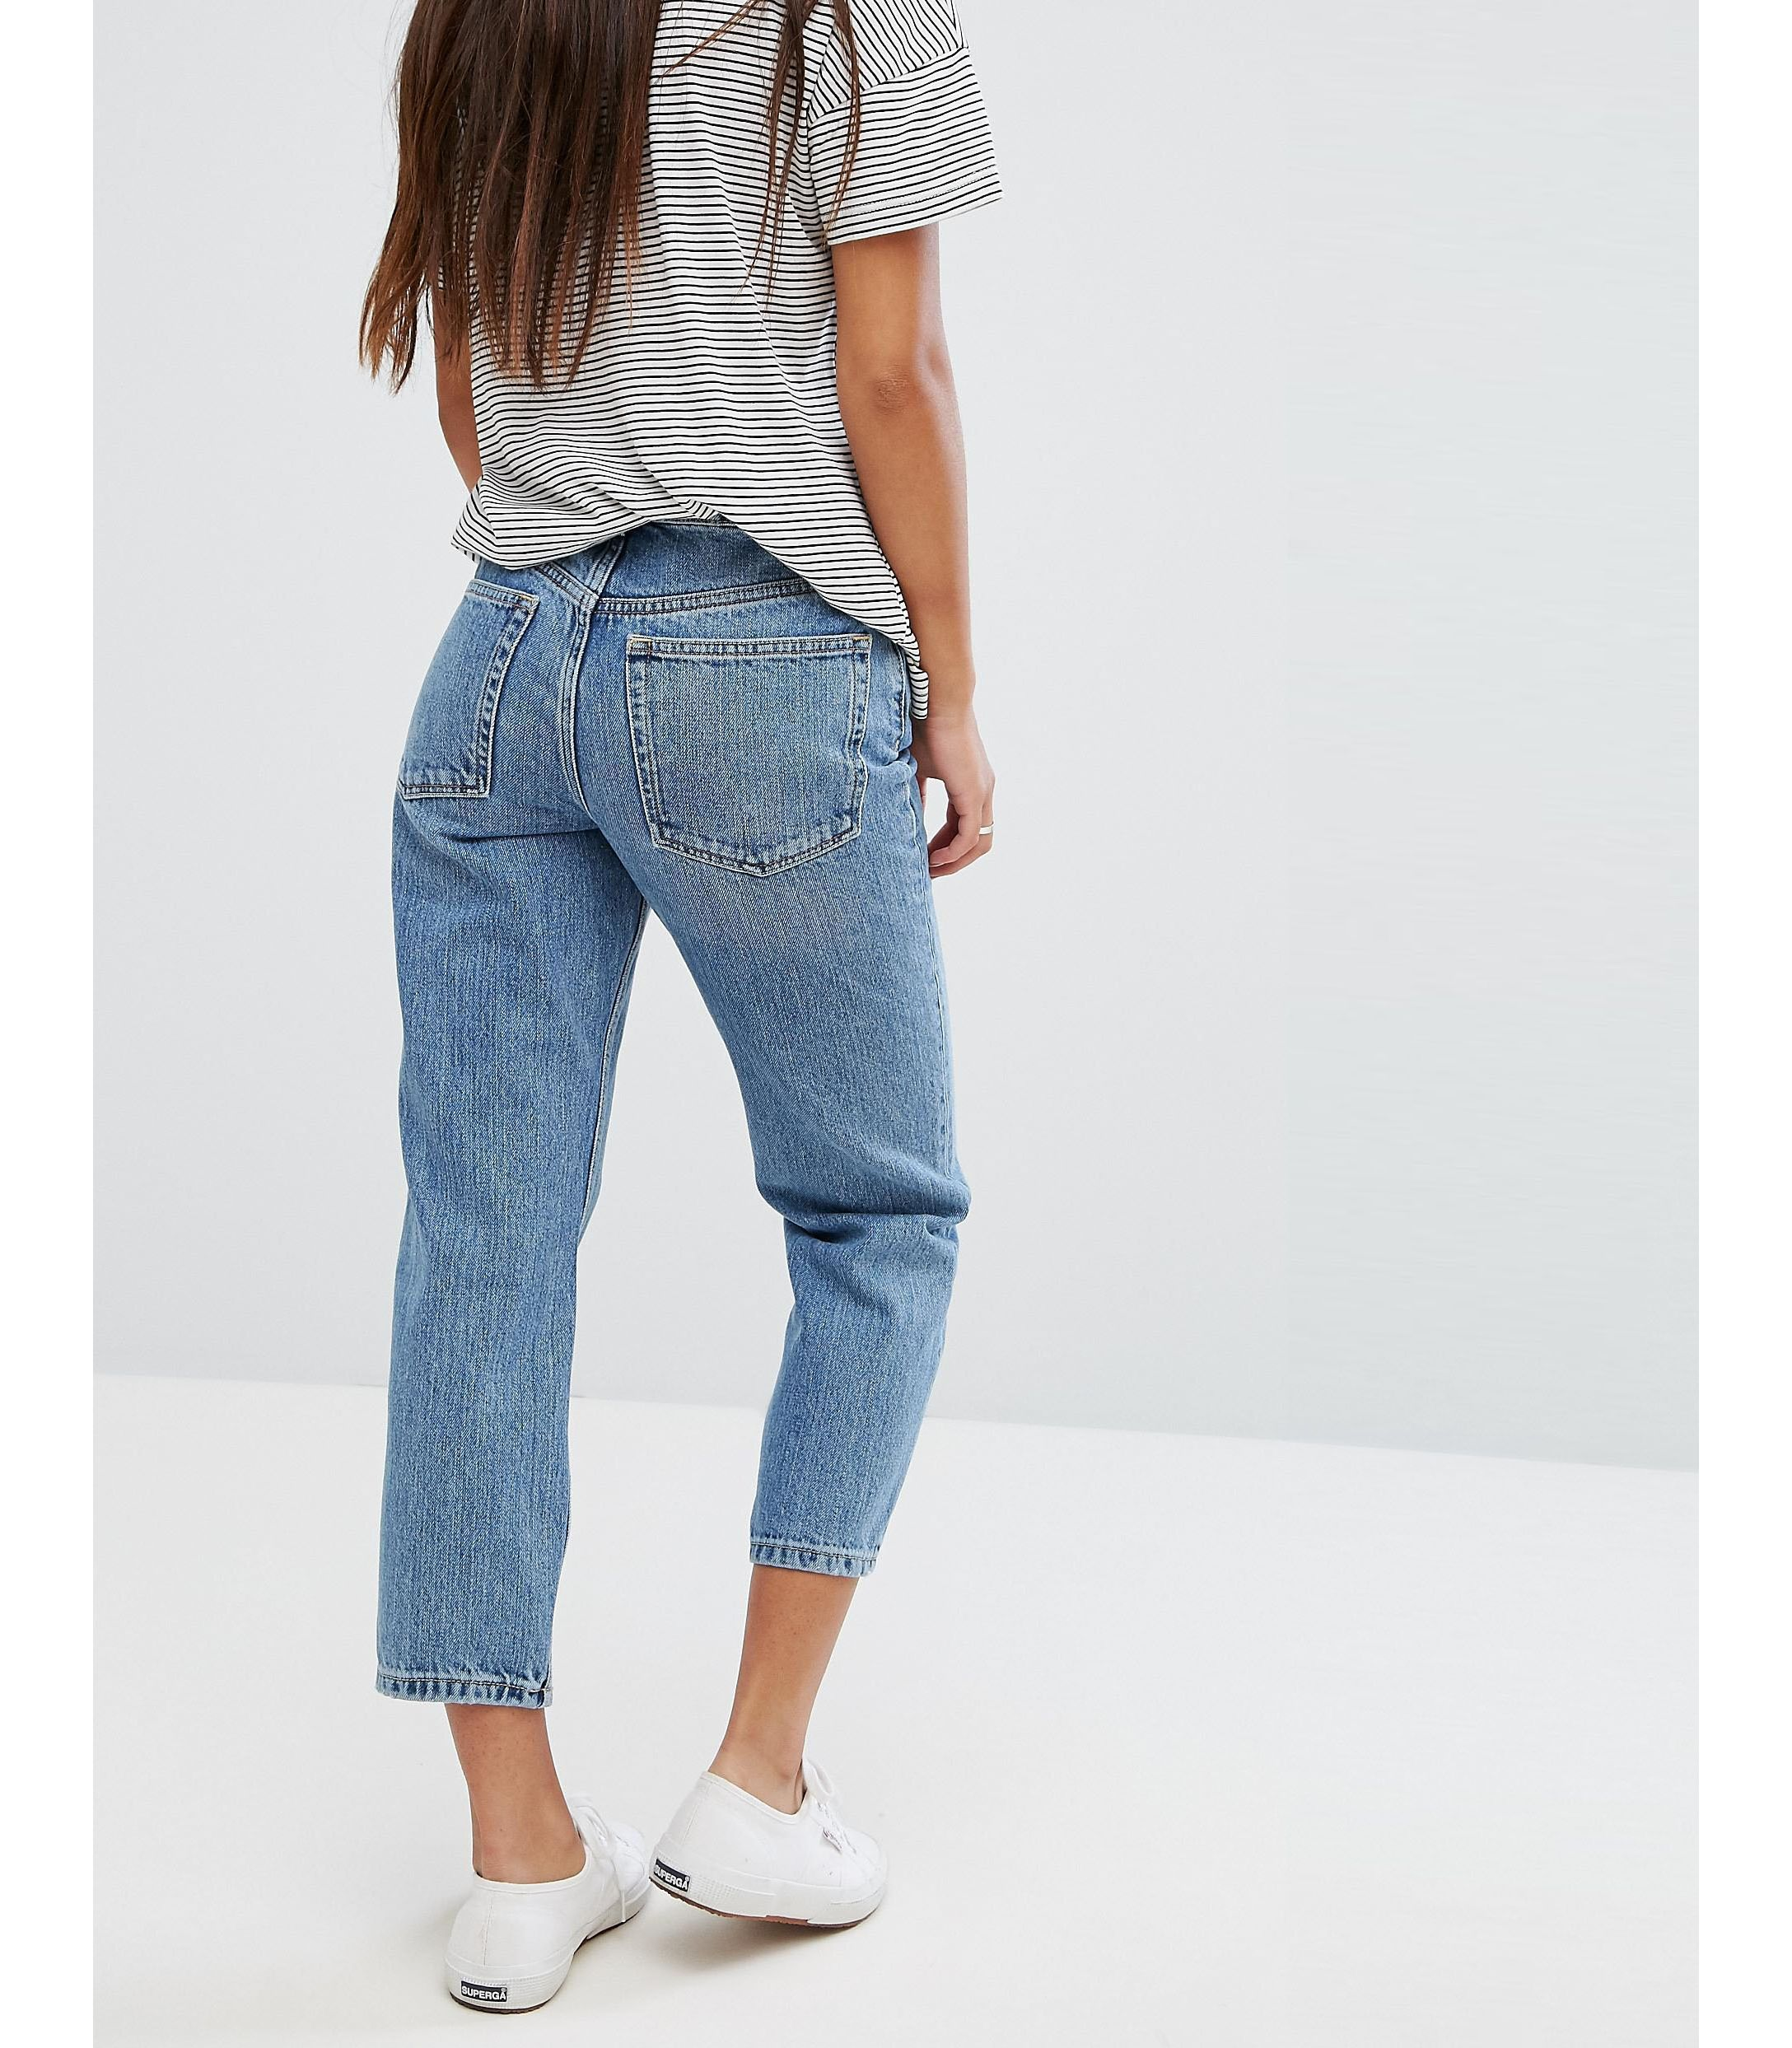 ★ASOS★ PETITE RECYCLED FLORENCE Authentic Straight Leg